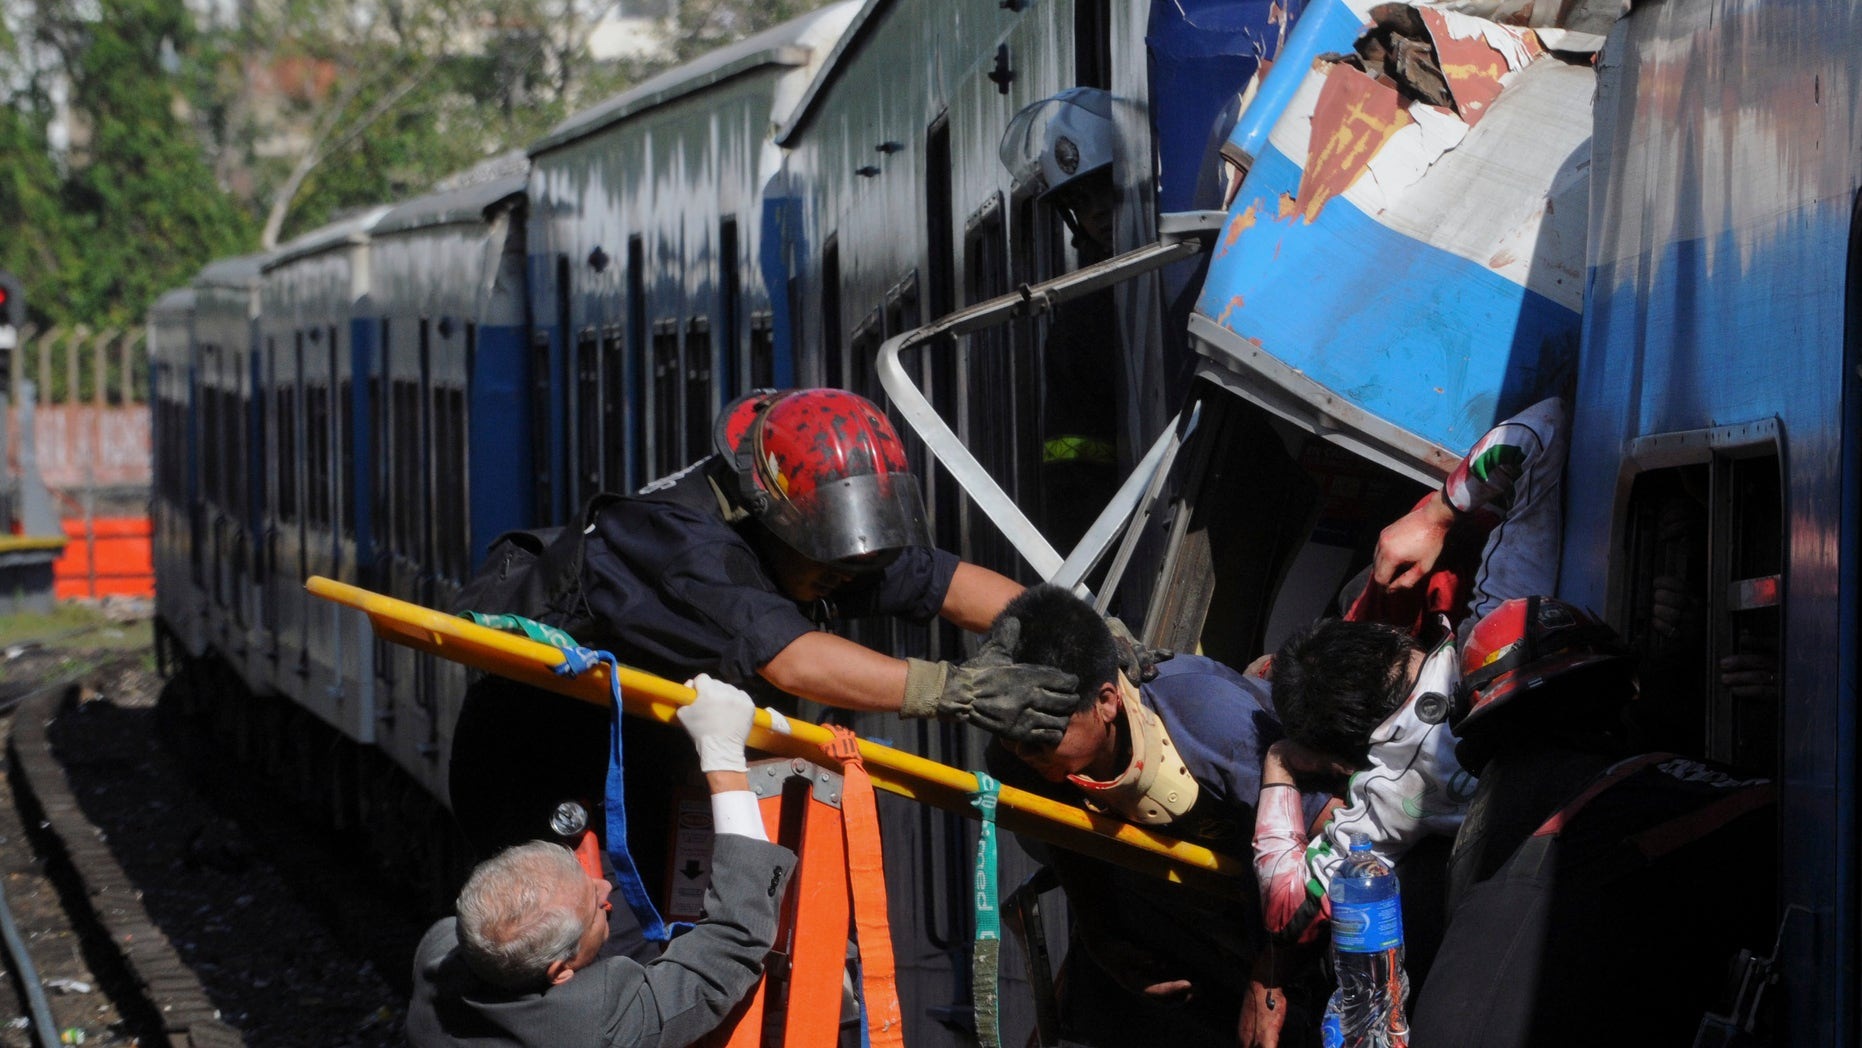 Feb. 22, 2012: Firemen rescue wounded passengers from a commuter train after a collision in Buenos Aires, Argentina.